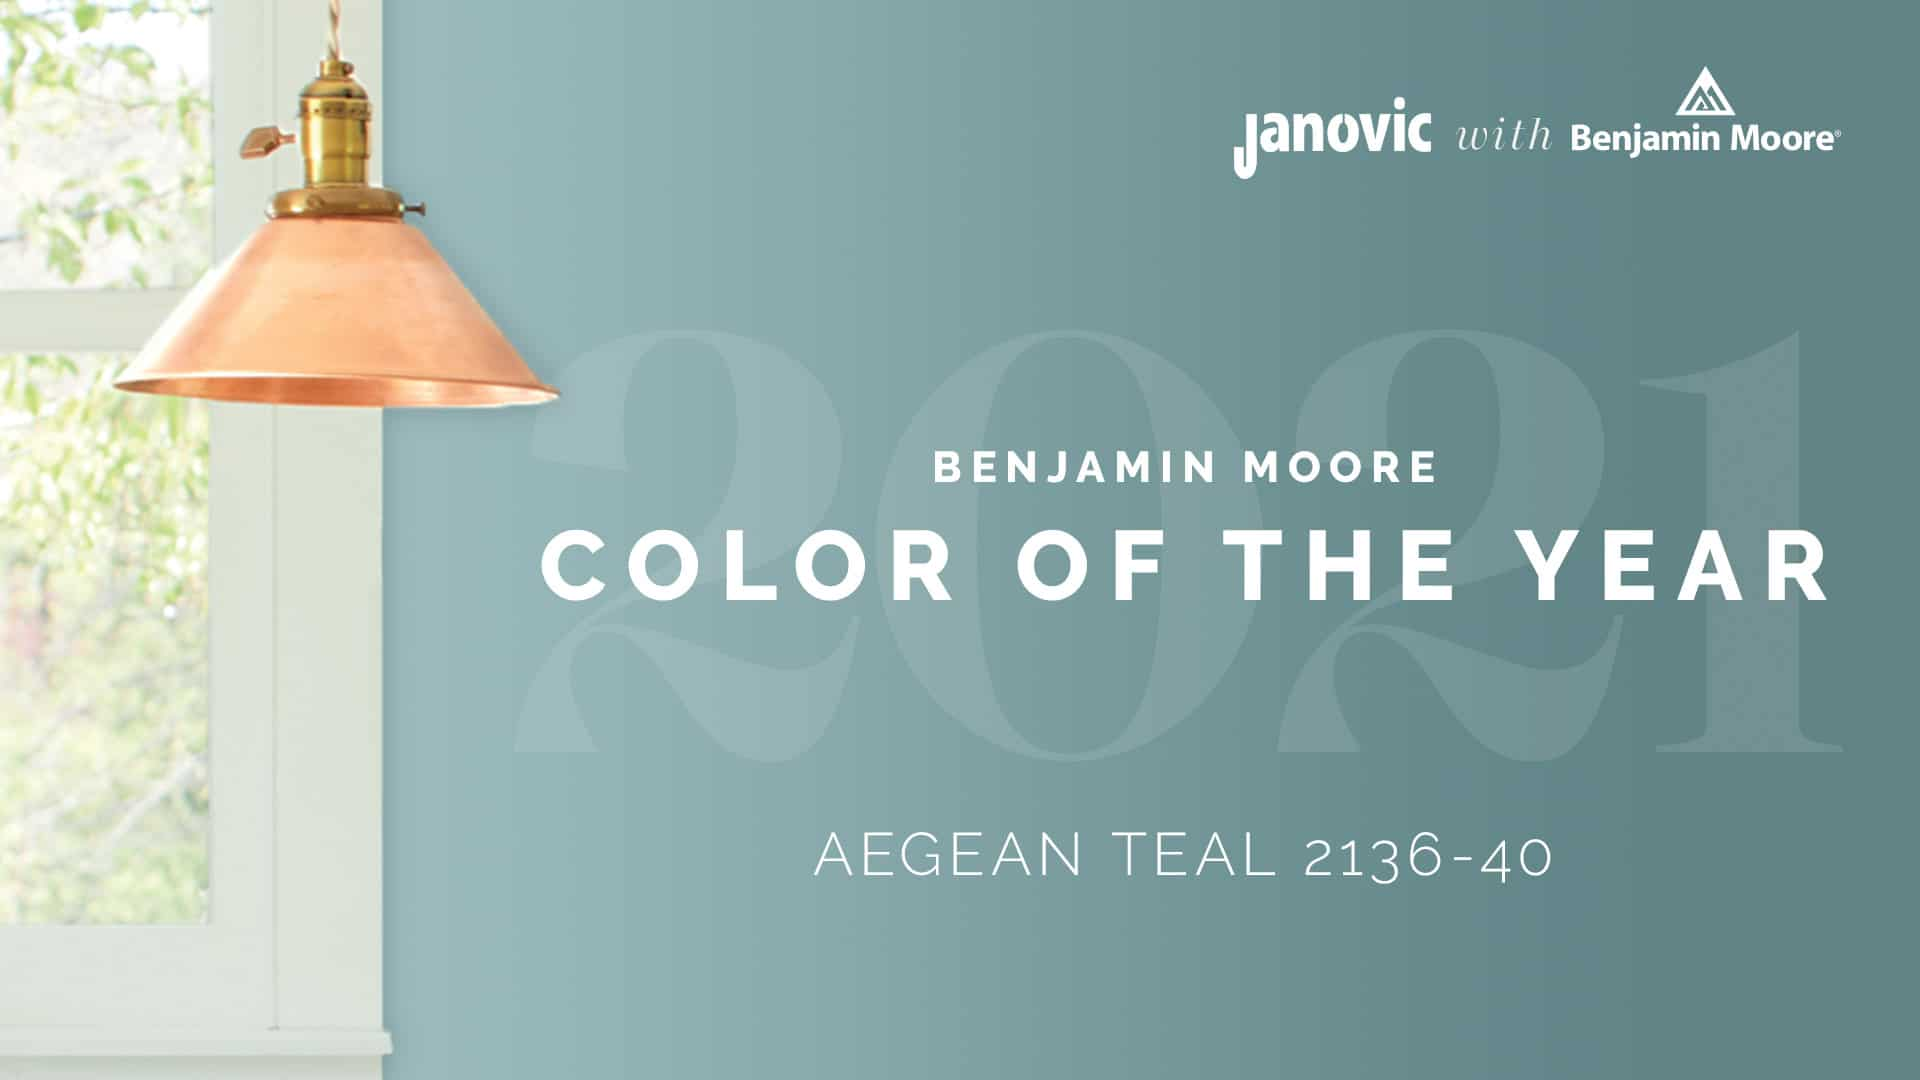 Benjamin Moore Color of the Year 2021 Aegean Teal Janovic Title Image